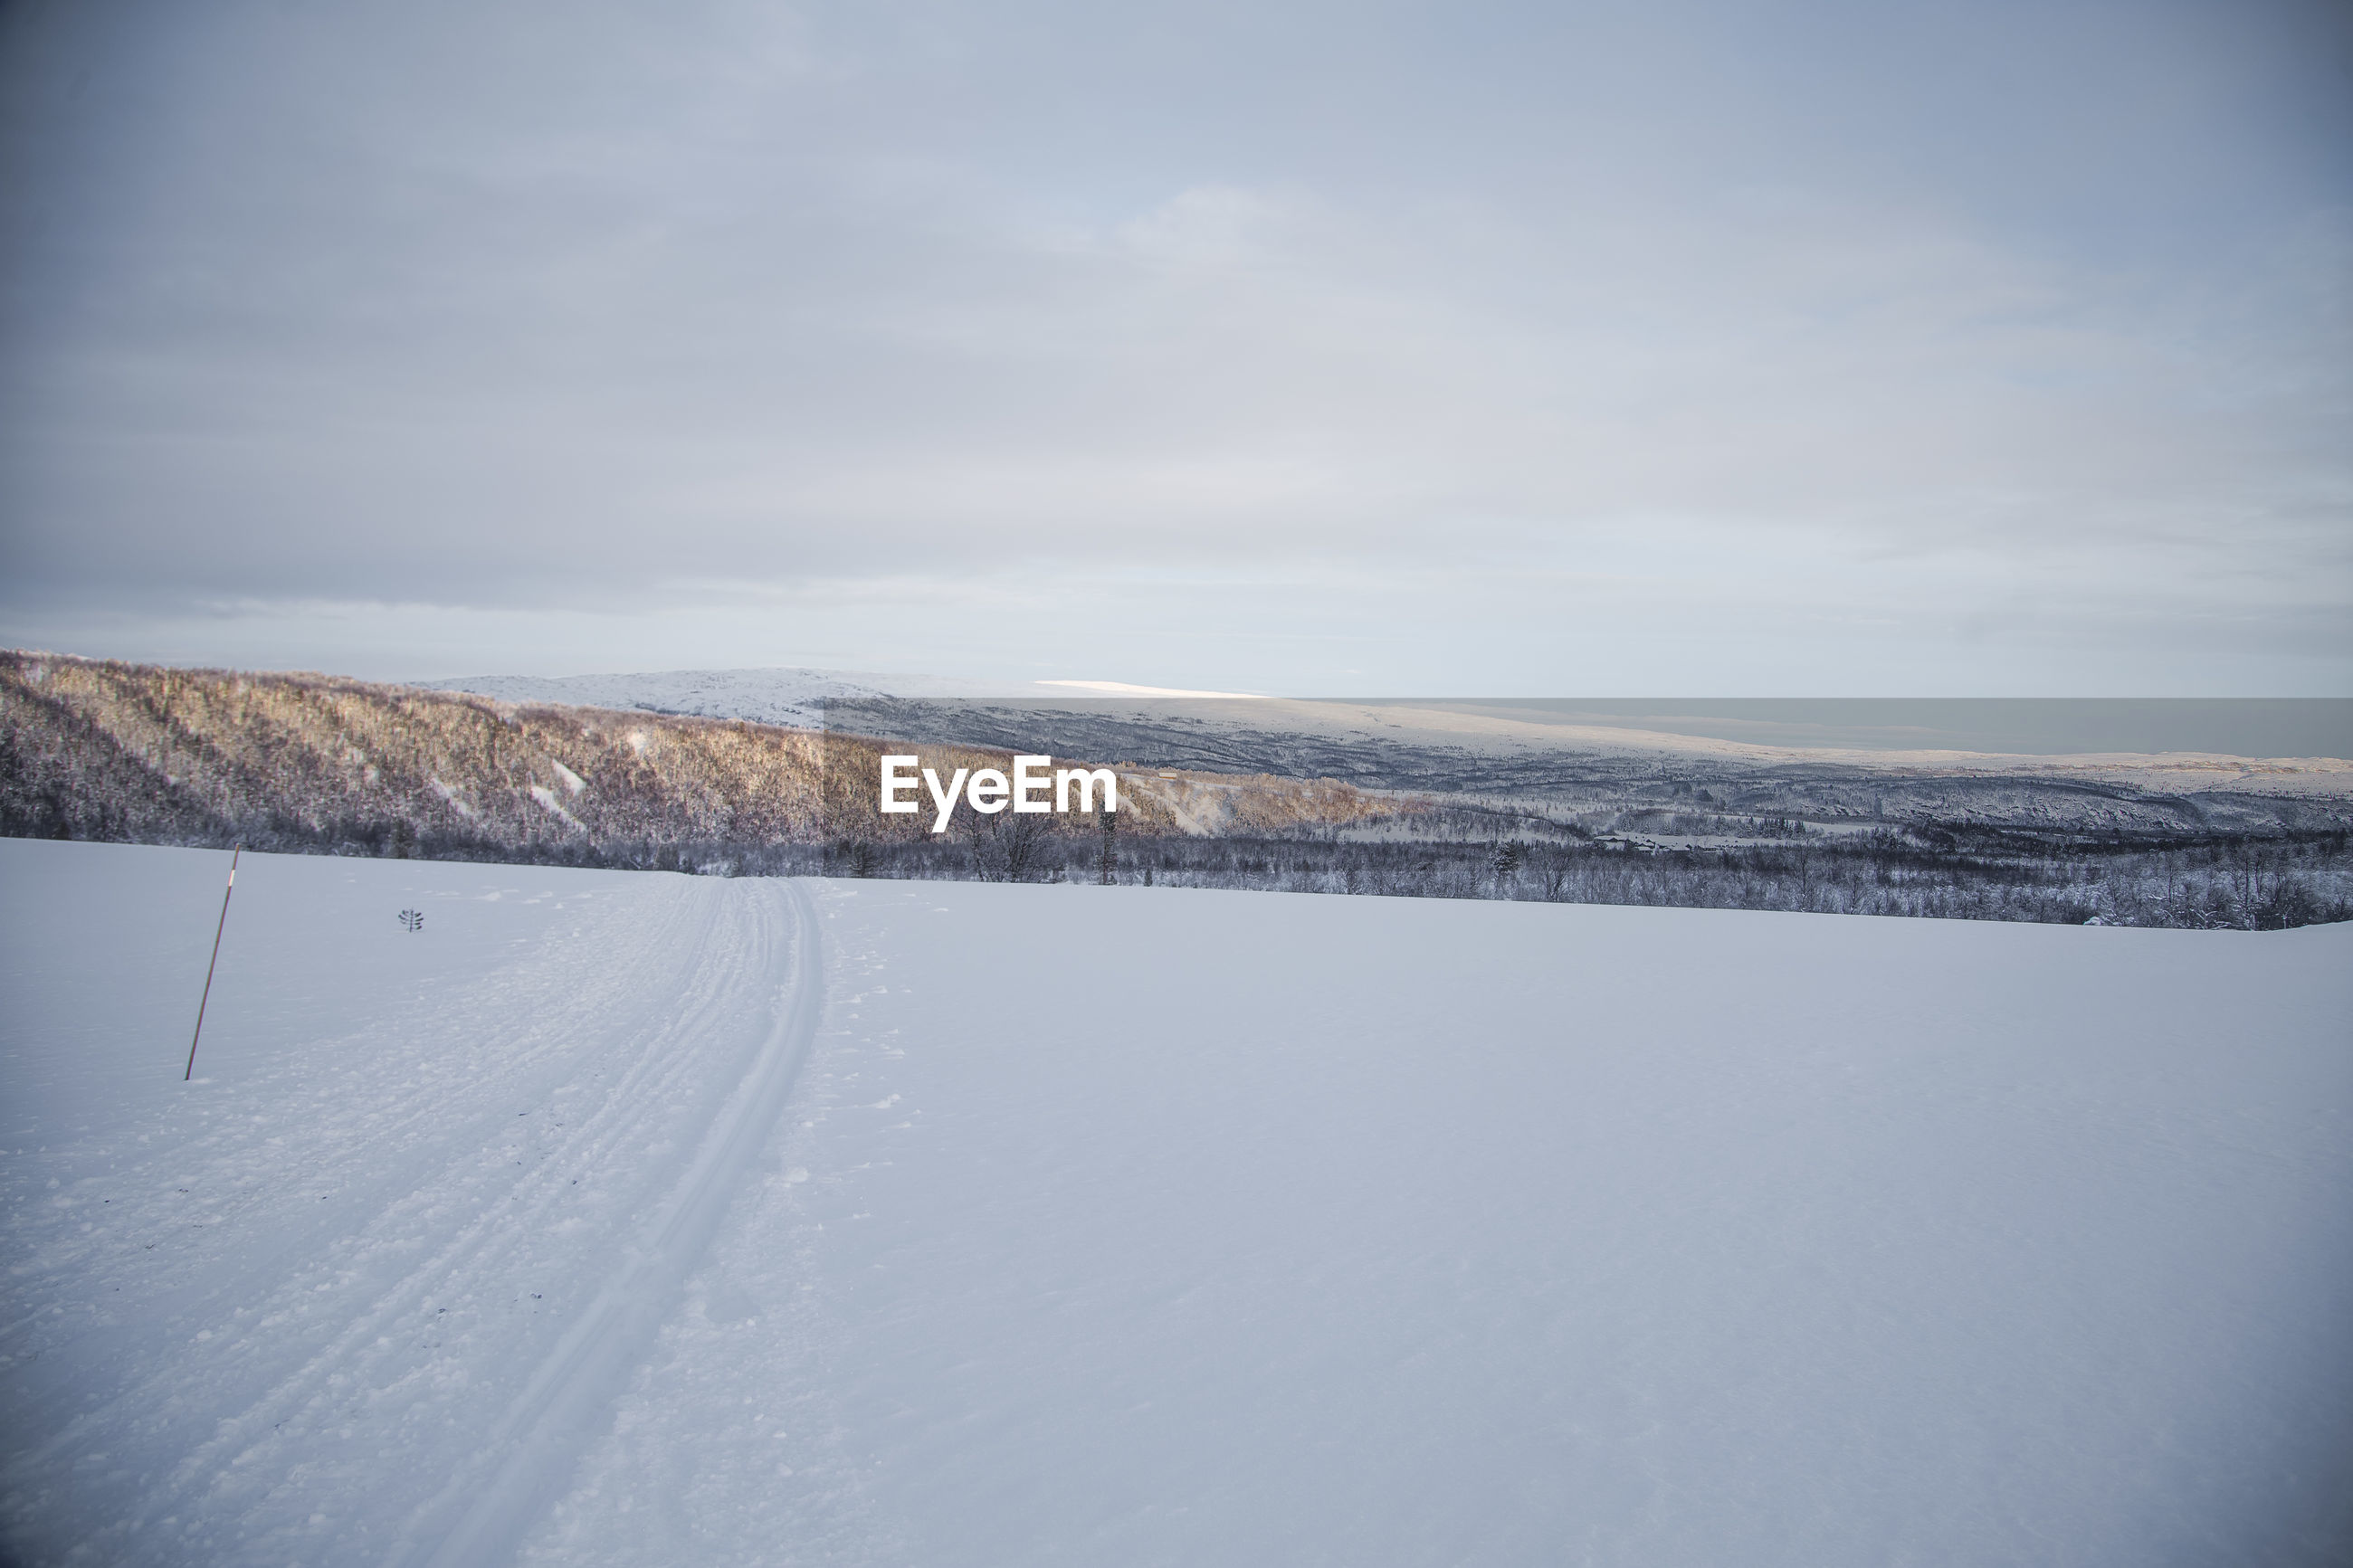 SCENIC VIEW OF SNOW COVERED LANDSCAPE AGAINST SKY DURING WINTER